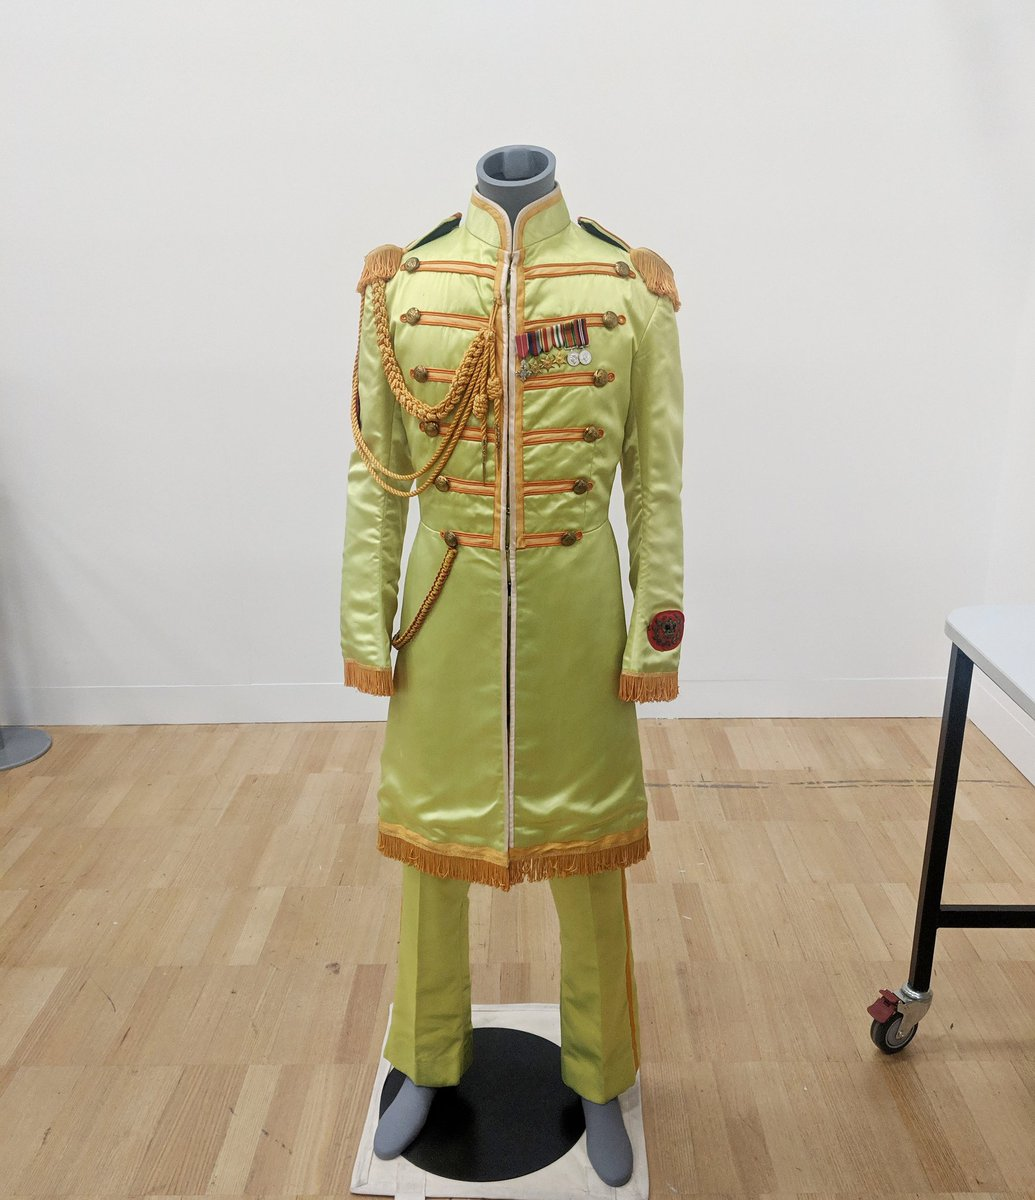 Bronny Robinson On Twitter Guys Actual John Lennon S Sgt Pepper S Suit I Am Beyond Frothing Right Now This Is Part Of The Melbournemuseum Revolutions Records Rebels Exhibition Opening April 27th